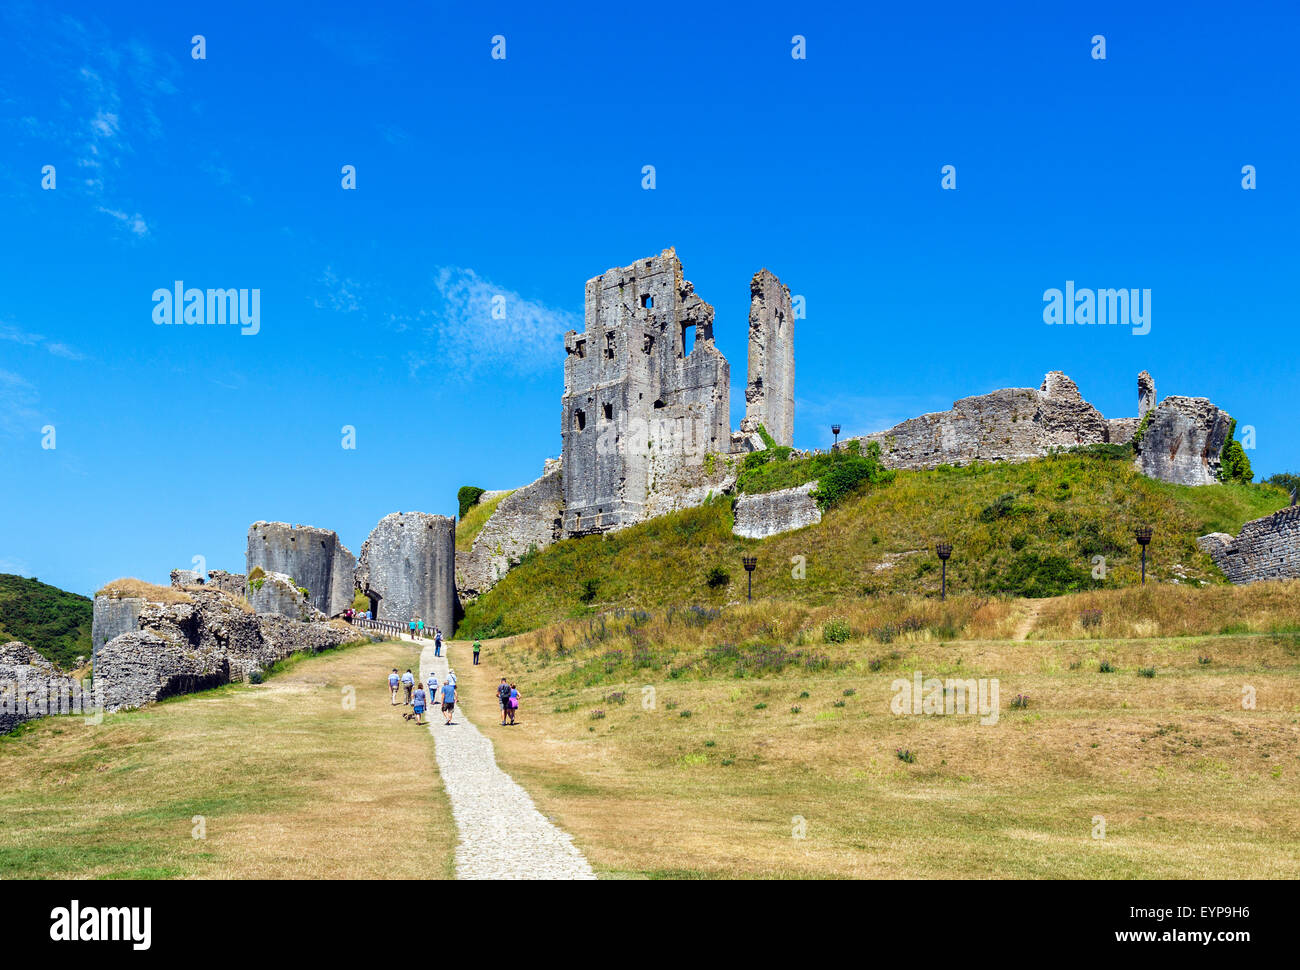 The ruins of Corfe Castle from the outer bailey, Isle of Purbeck, Dorset, England, UK Stock Photo